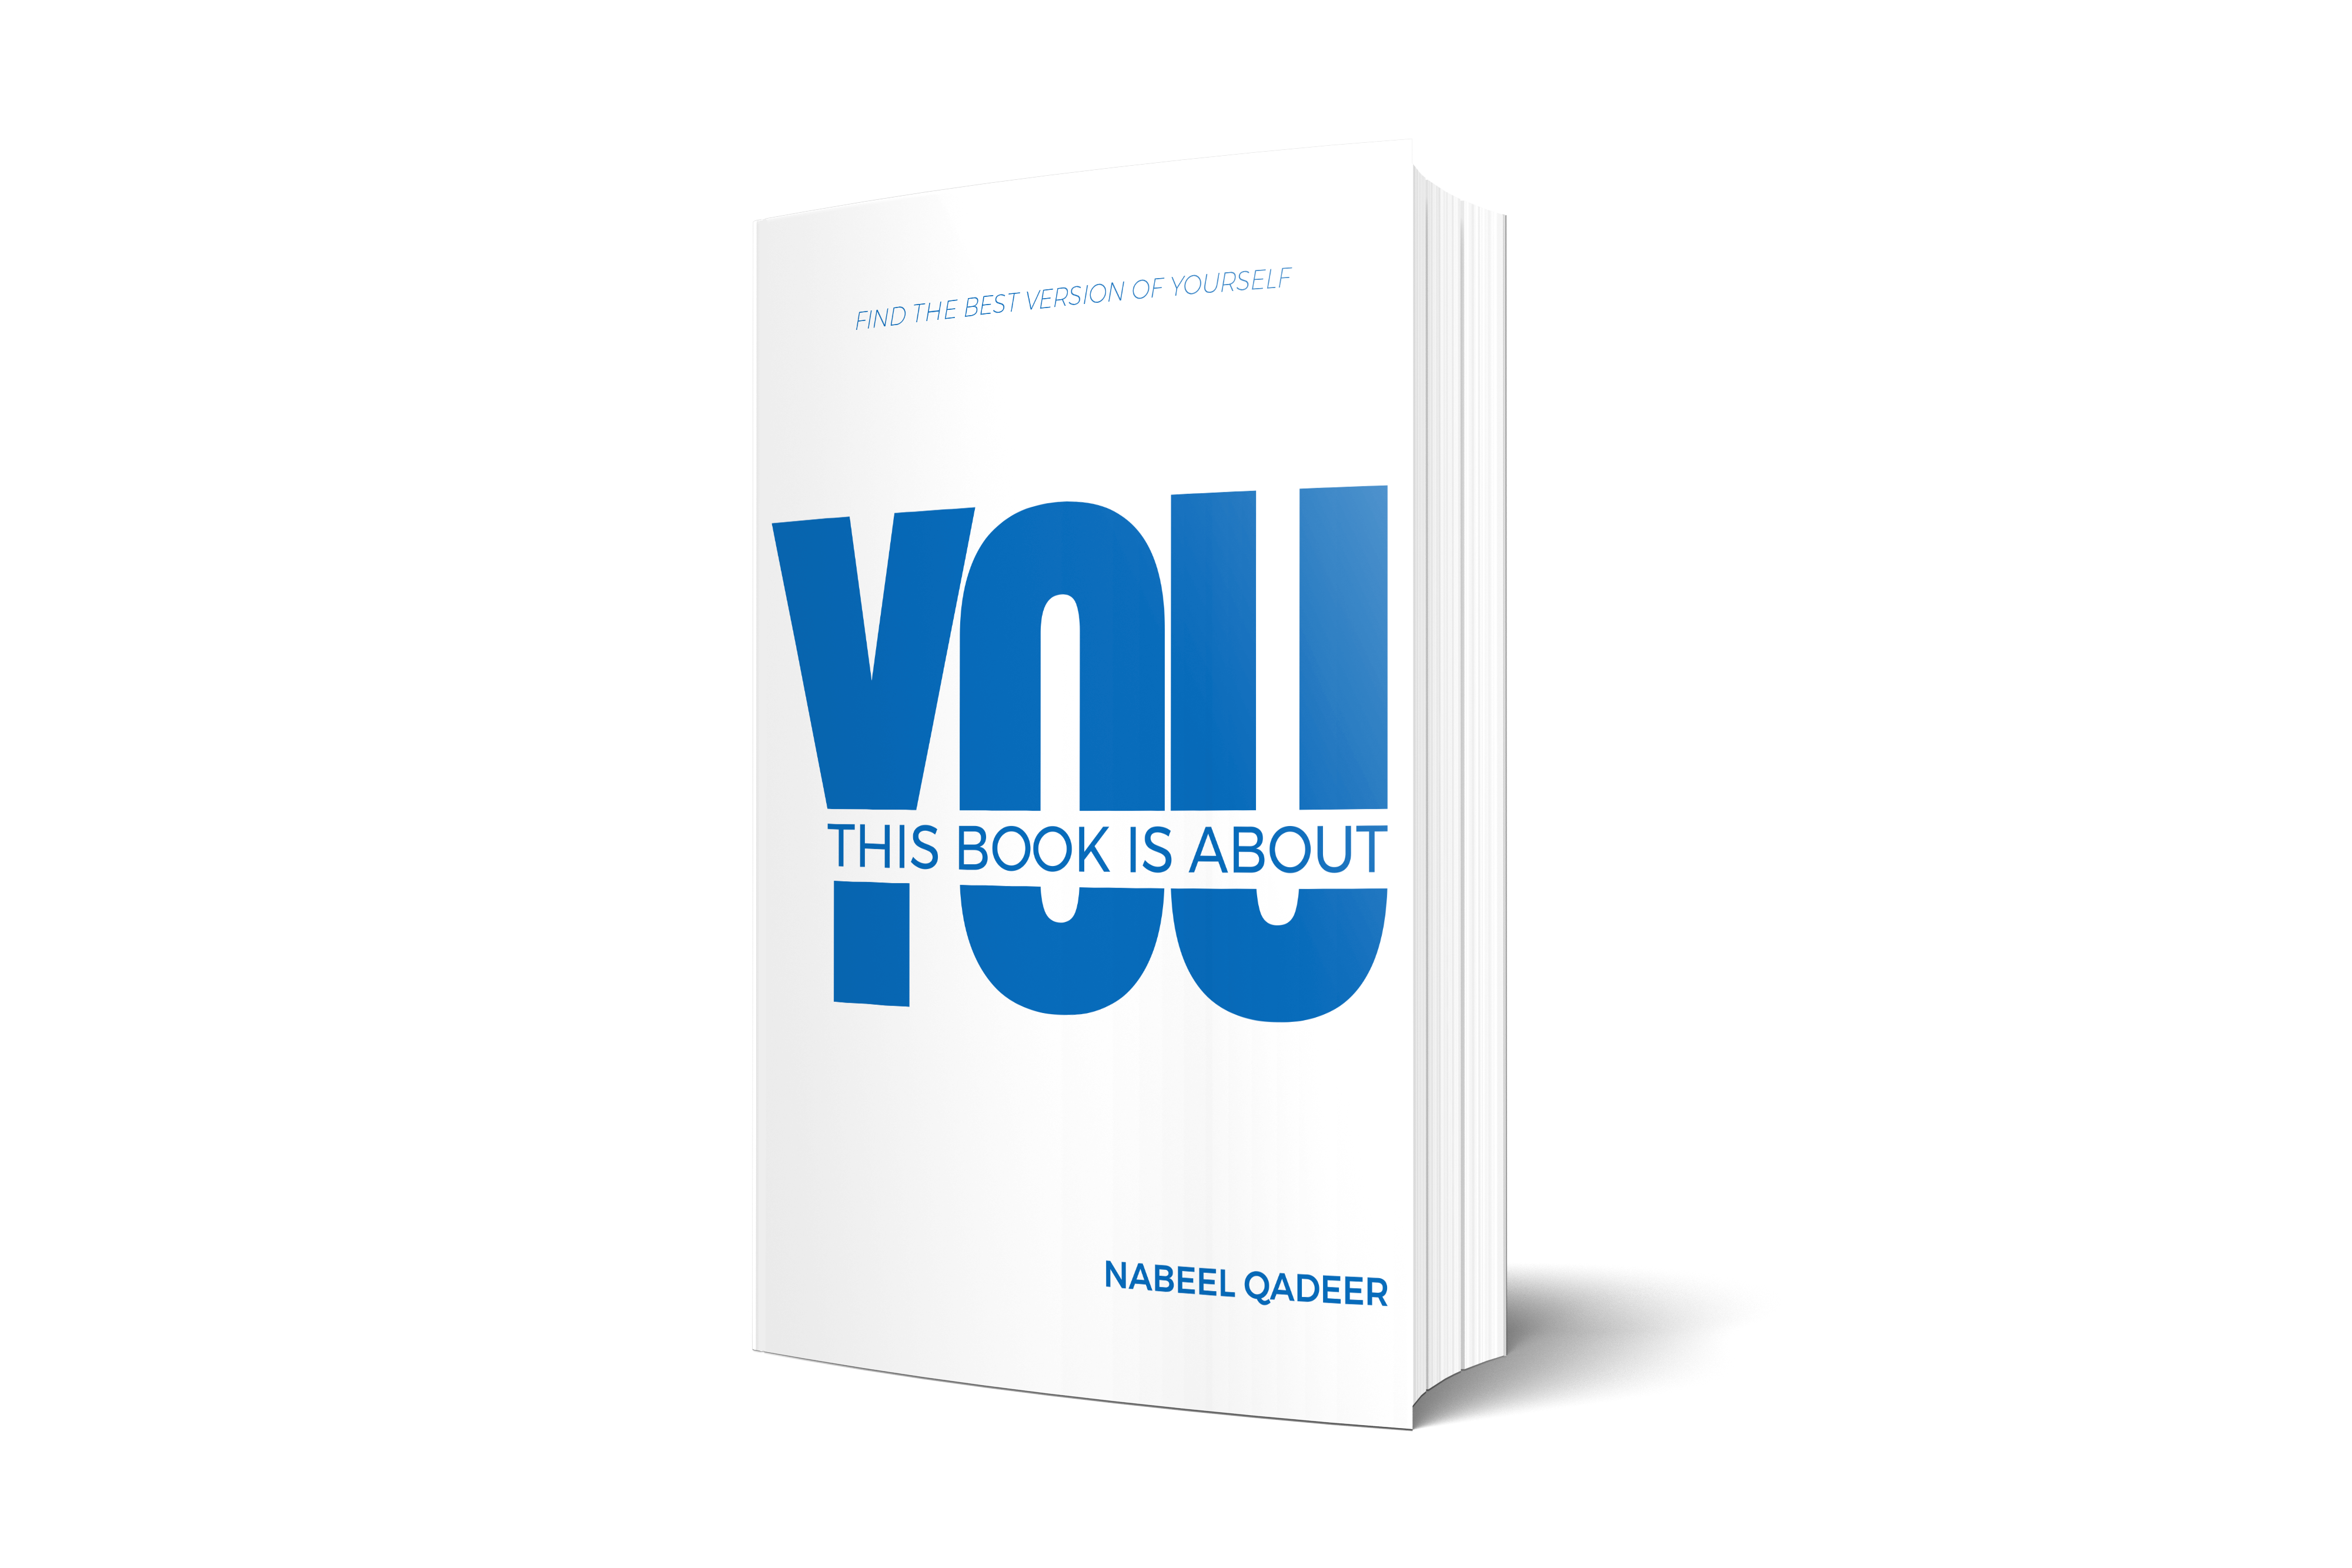 This Book Is About YOU by Nabeel Qadeer